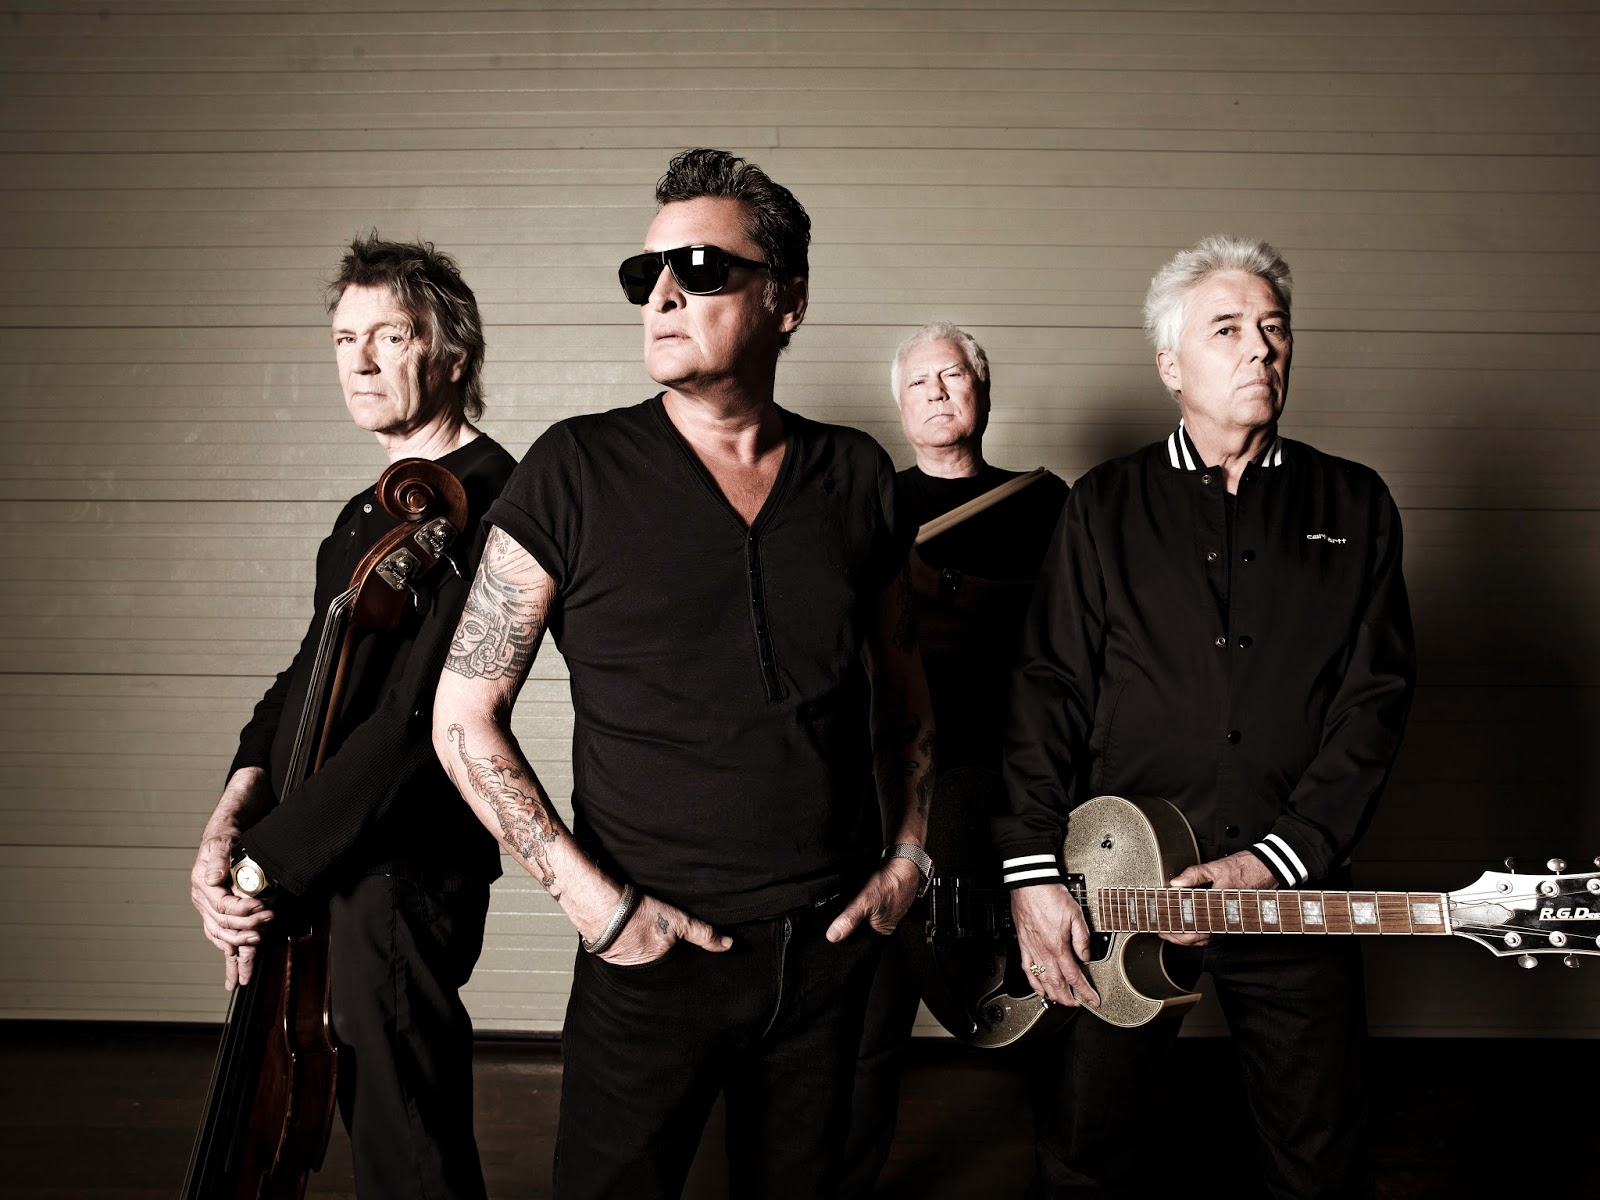 Barry Hay Uncensored U S A The Legendary Voice Songwriter Of Golden Earring